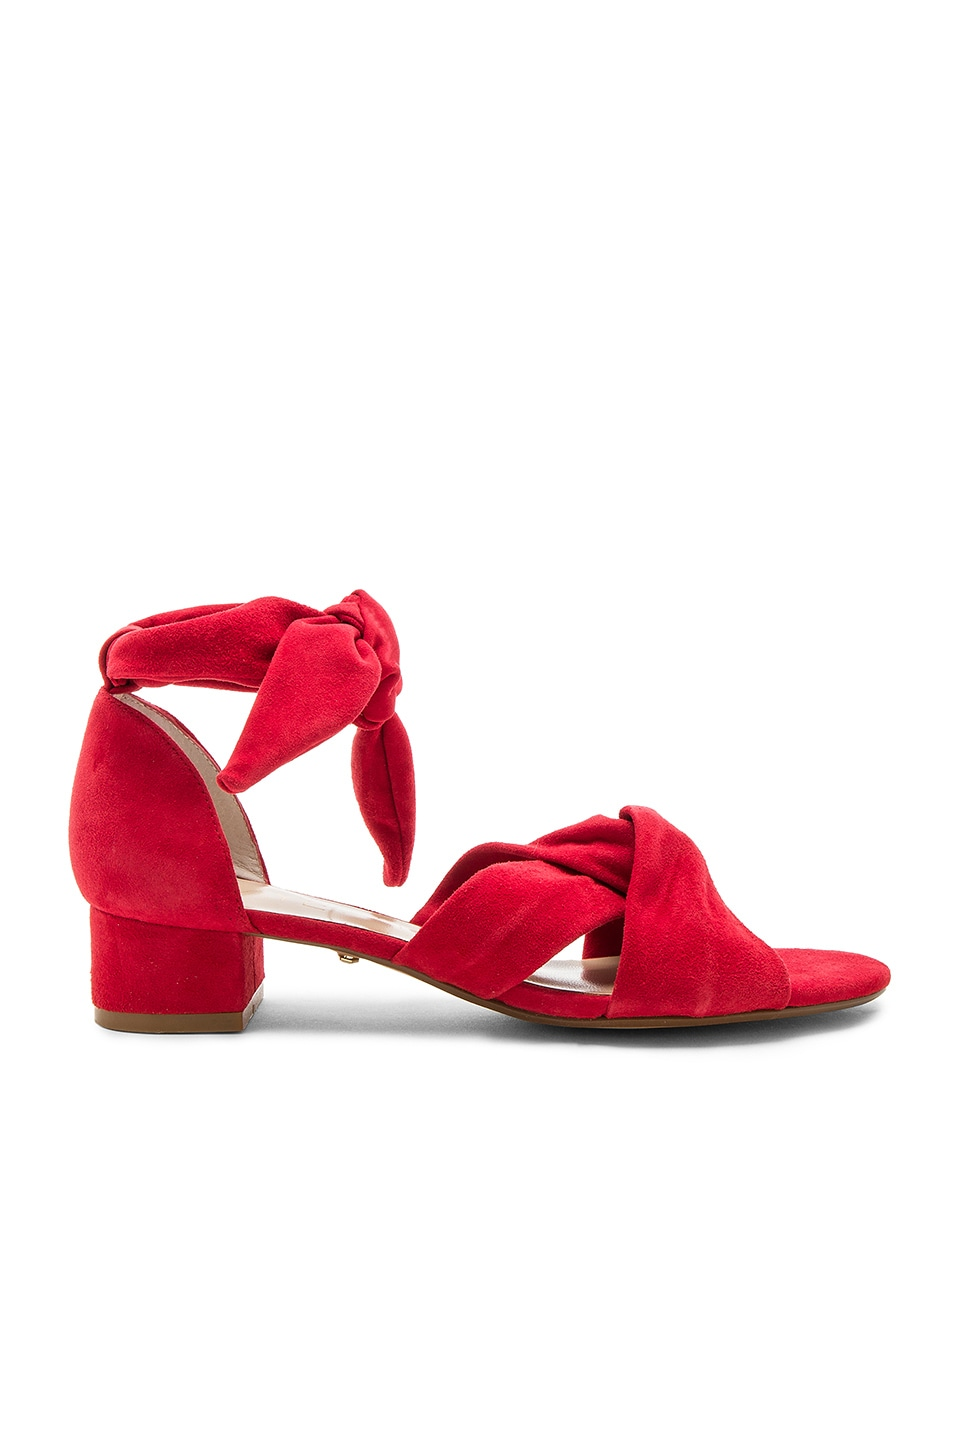 RAYE Aurora Sandal in Ruby